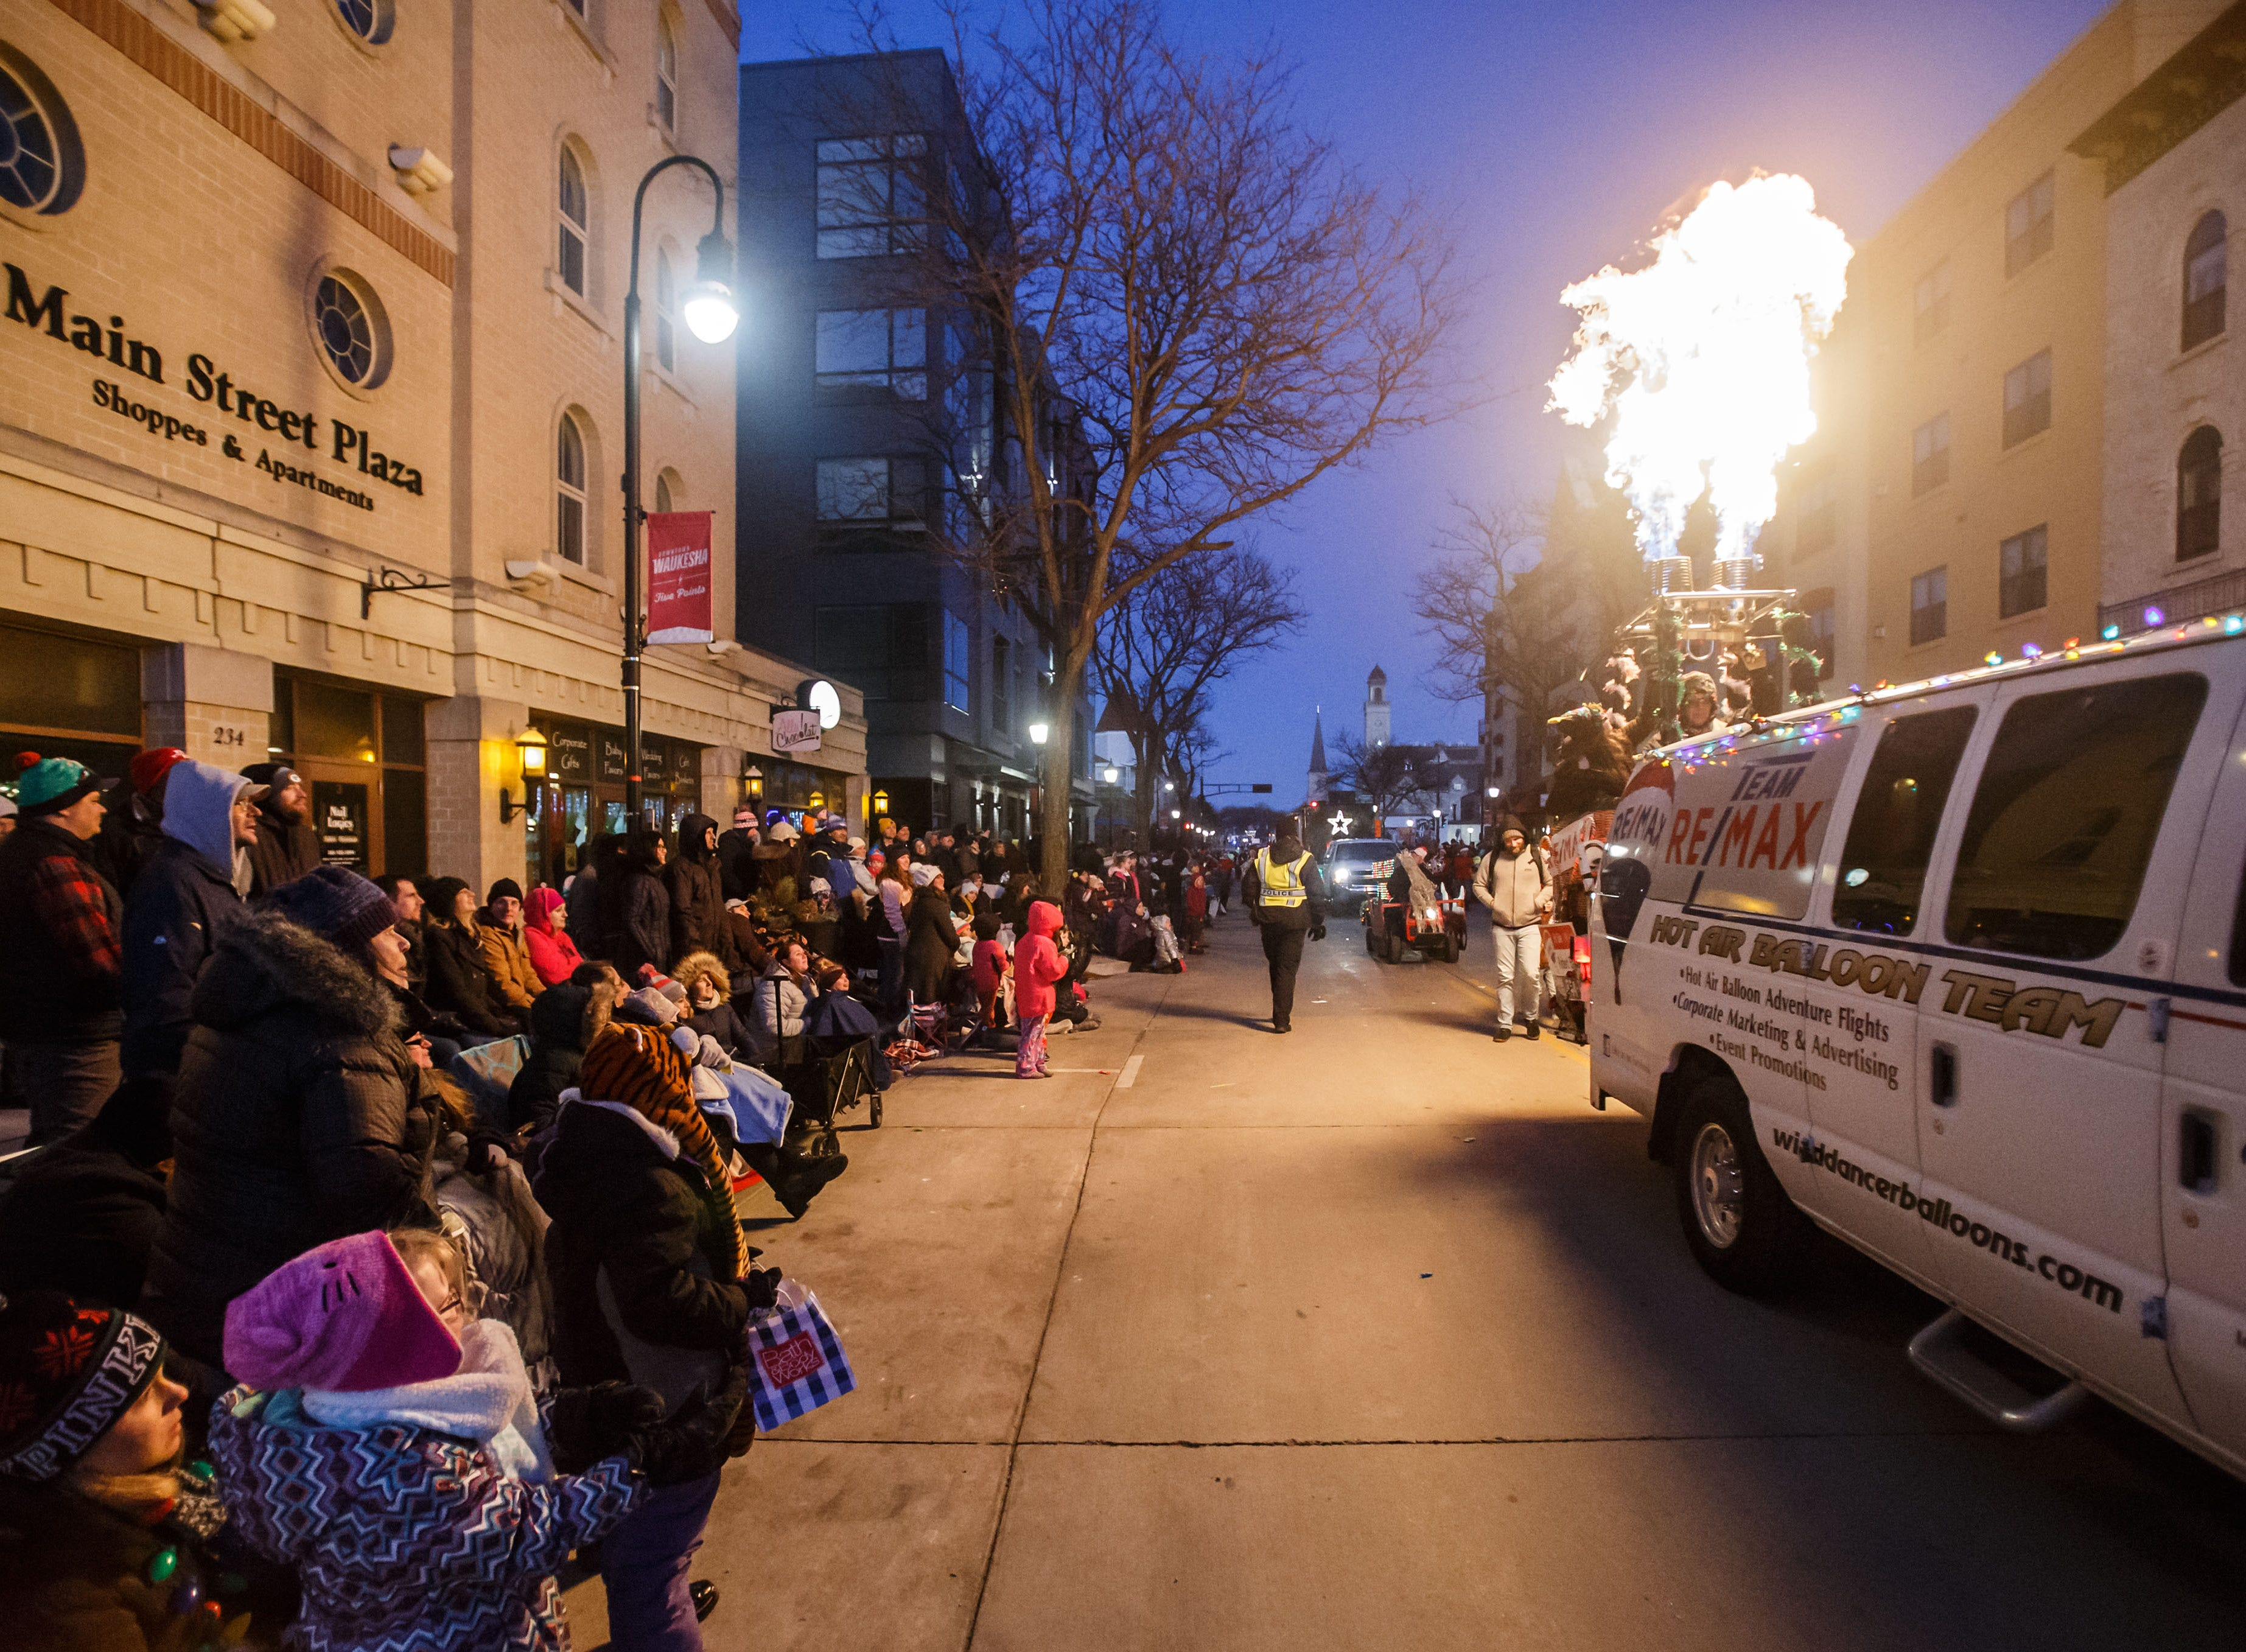 Flames from the WindDancer hot air balloon team captivate parade-goers during the 56th annual Waukesha Christmas Parade on Sunday, Nov. 18, 2018.